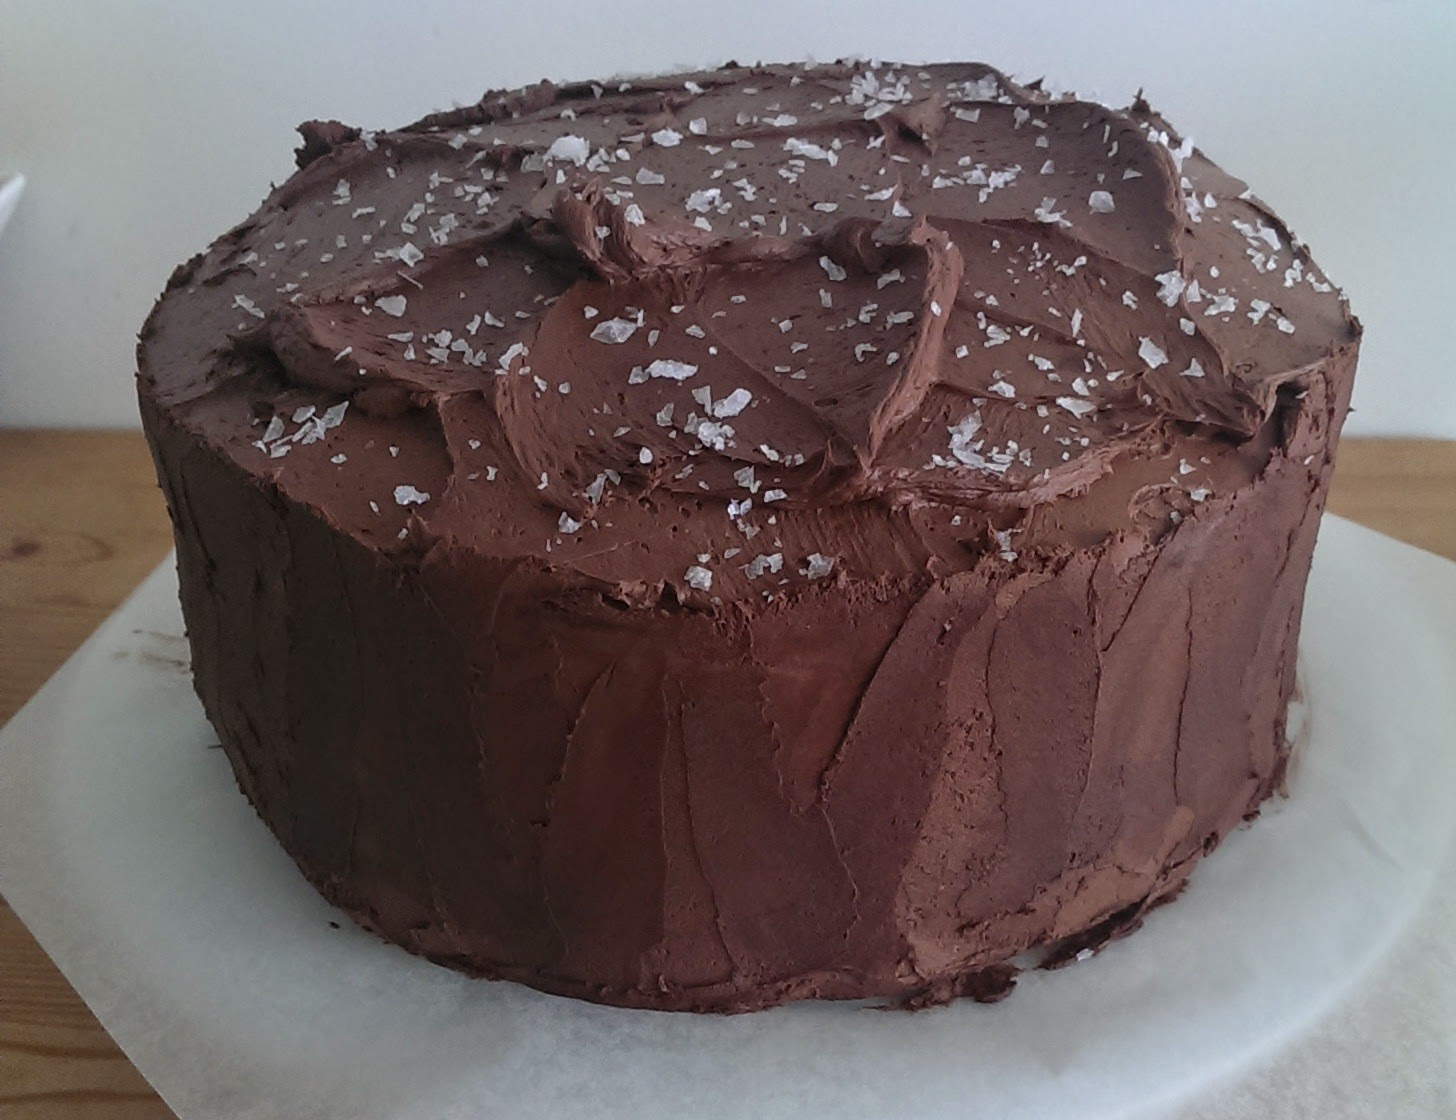 ... For Food: Martha Stewart's Salted Caramel Six-Layer Chocolate Cake